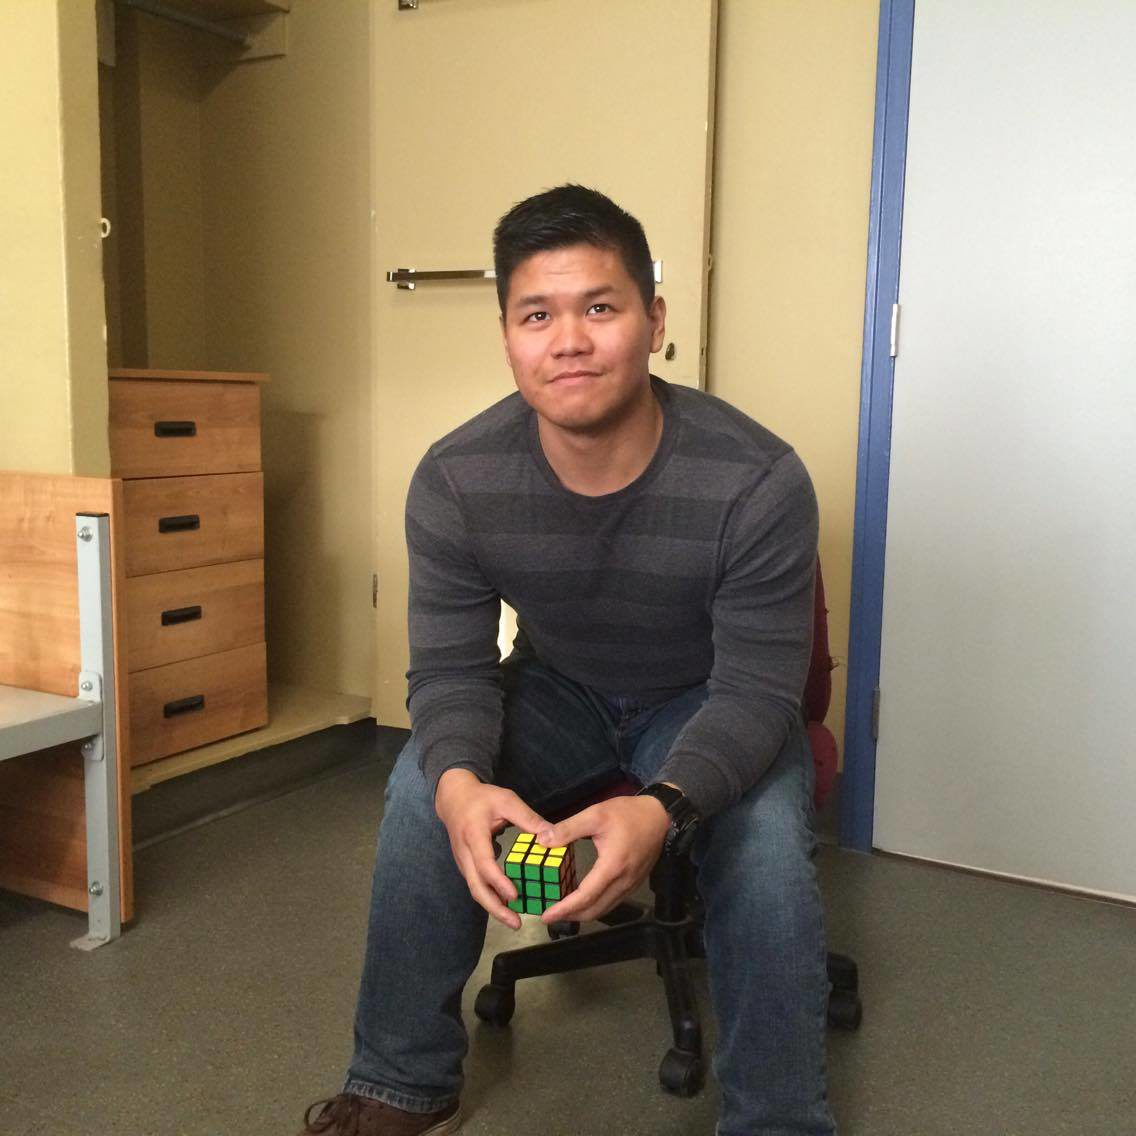 Man seated in office chair holding Rubik's cube